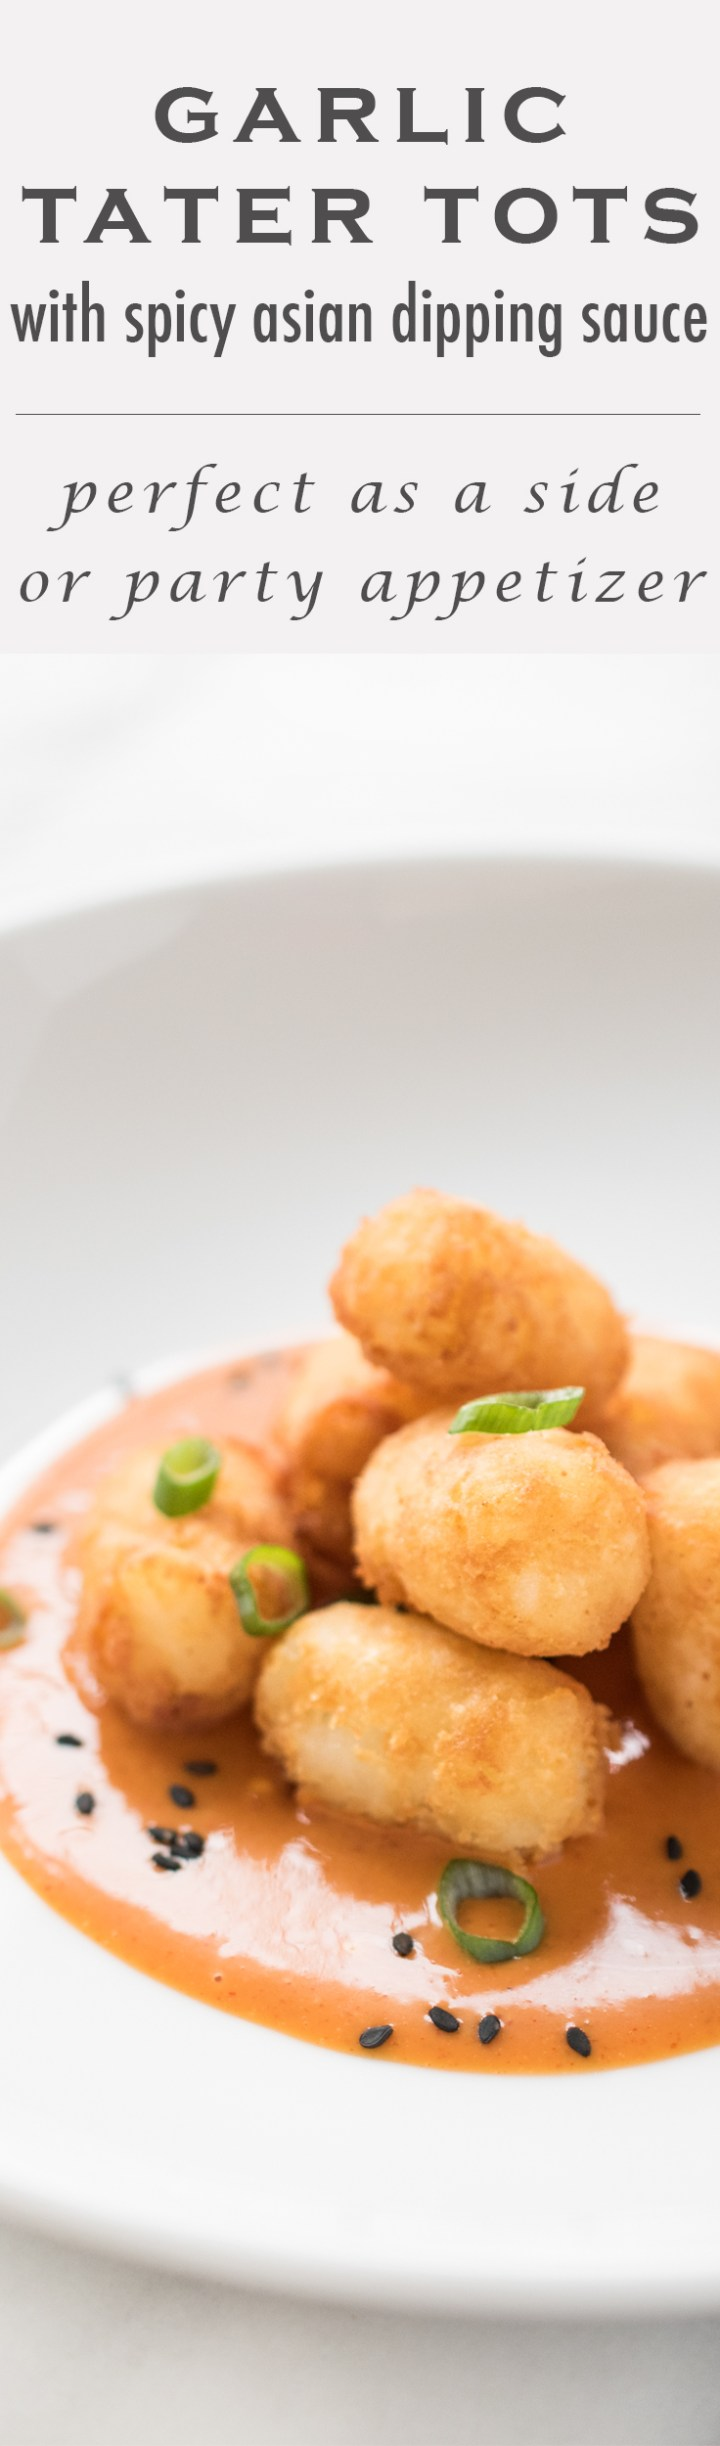 Garlic Ginger Tater Tots with a Spicy Asian Dipping Sauce. Perfect as a snack or side, it also makes a perfect party appetizer!